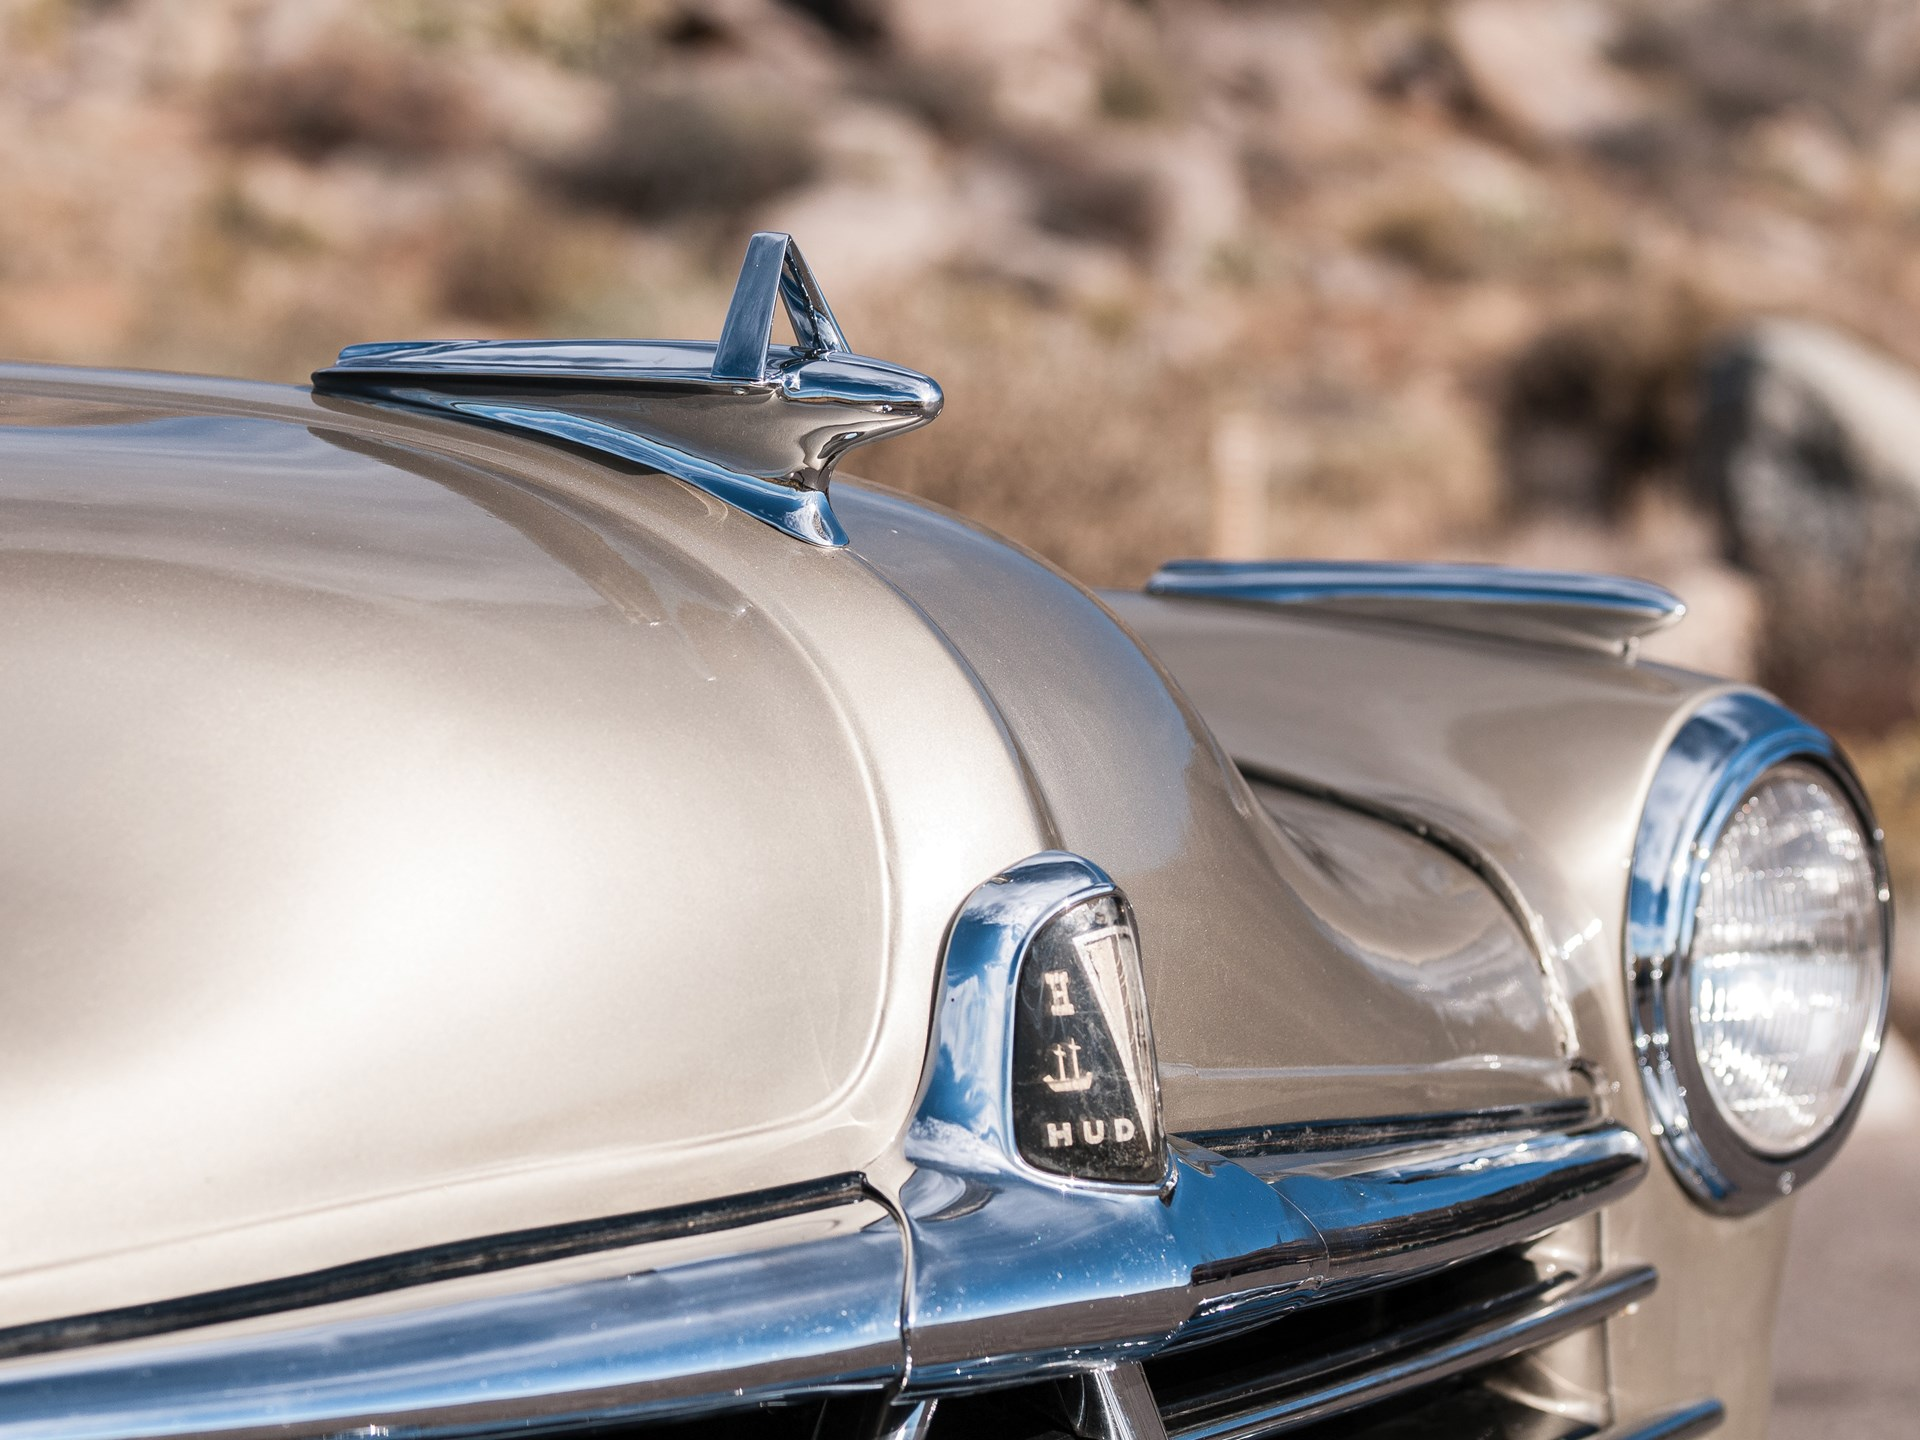 Rm Sothebys 1950 Hudson Commodore Eight Convertible Brougham Cadillac Reproduction Wiring Harness